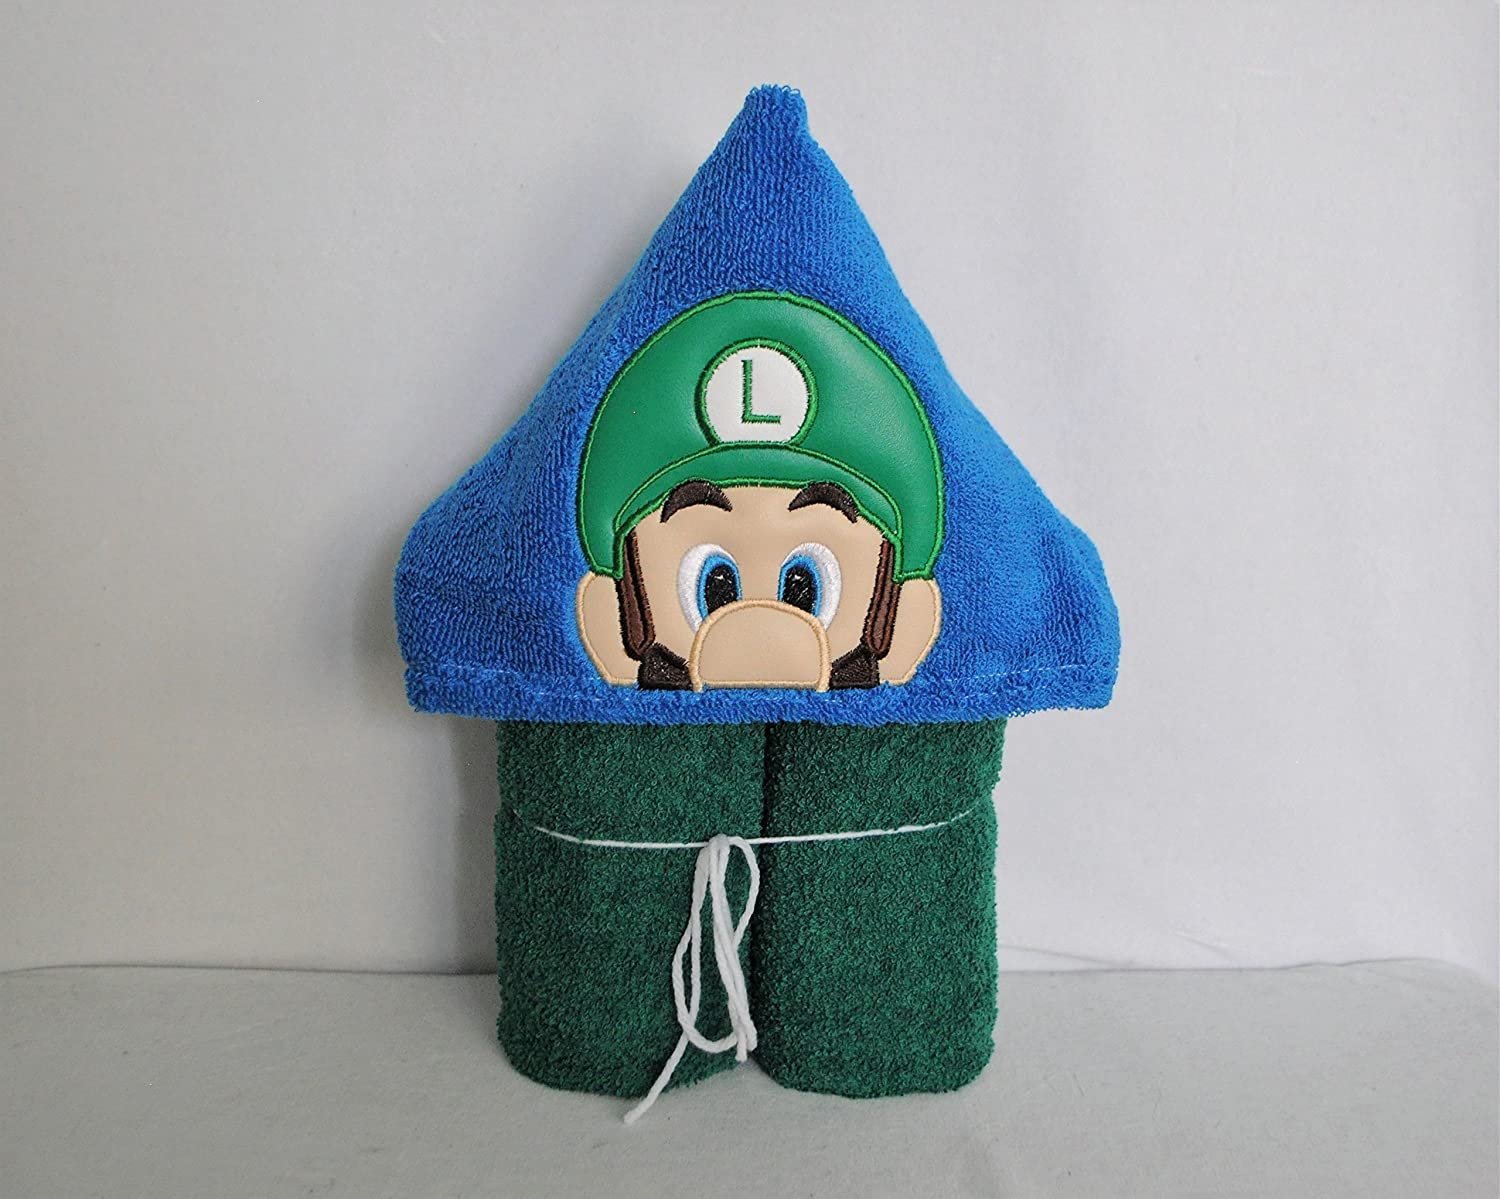 Green Super Game Guy Hooded Bath Towel - Baby, Child, Tween